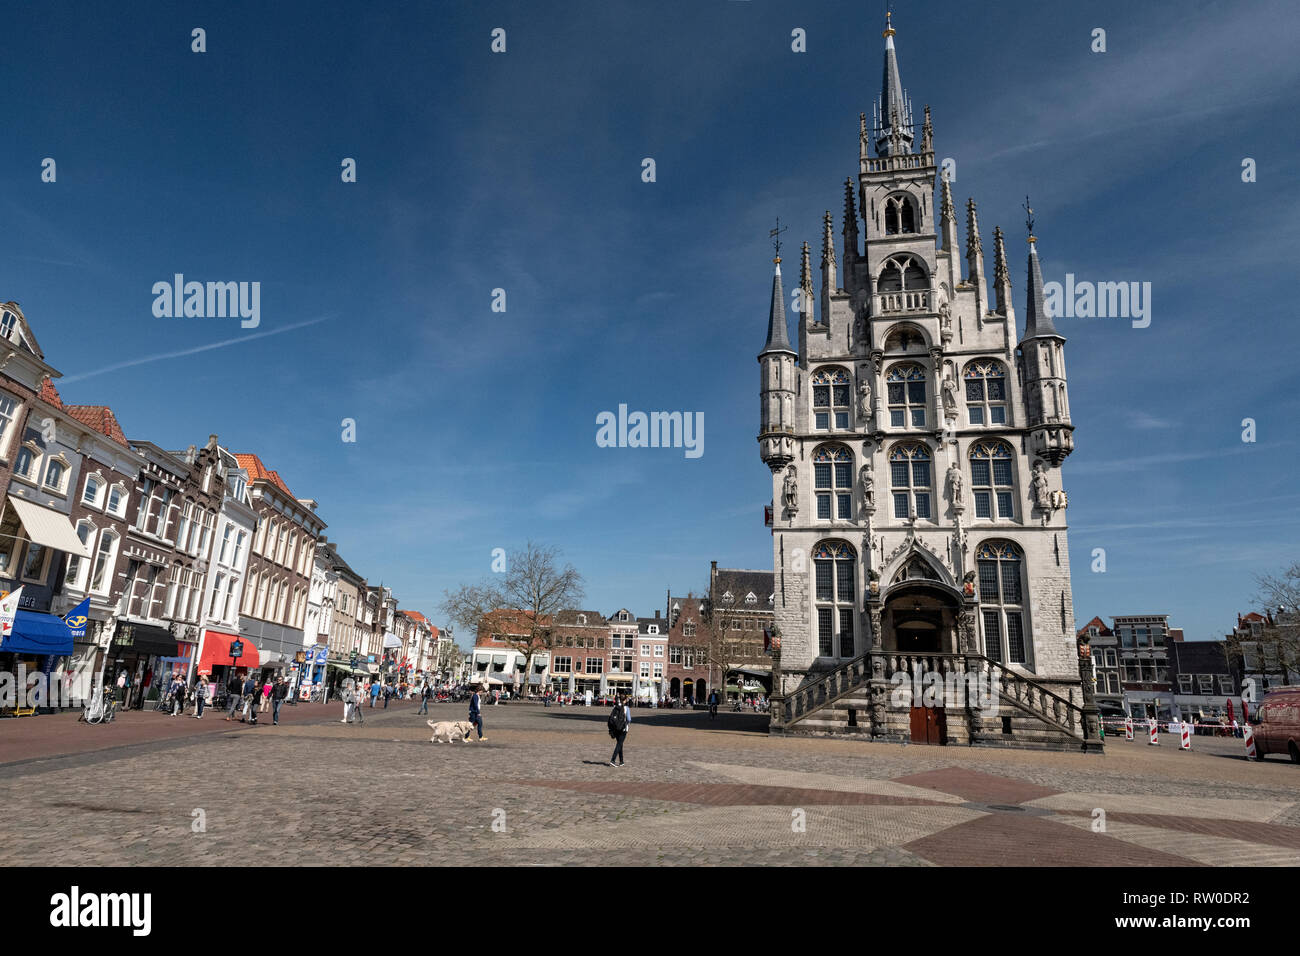 Netherlands; Gouda, 2017, city center, showing its famous 15th century Town hall, The place where Gouda chesse fair takes place. - Stock Image